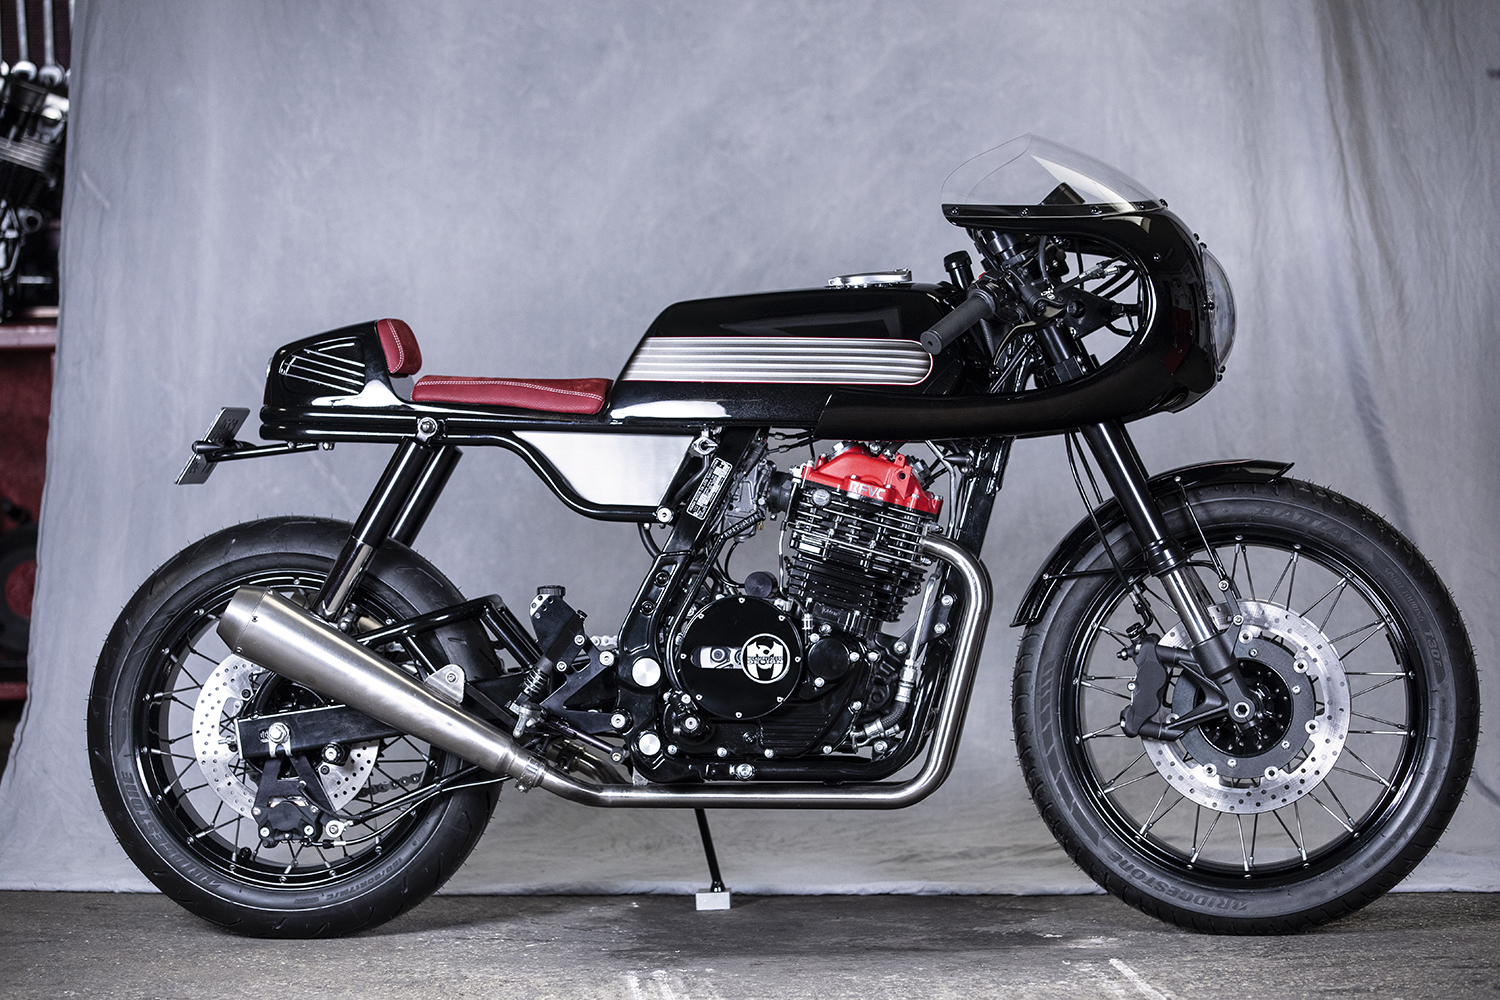 CAFFEINATED SINGLE. Honda Dominator NX650 by MécaServices92